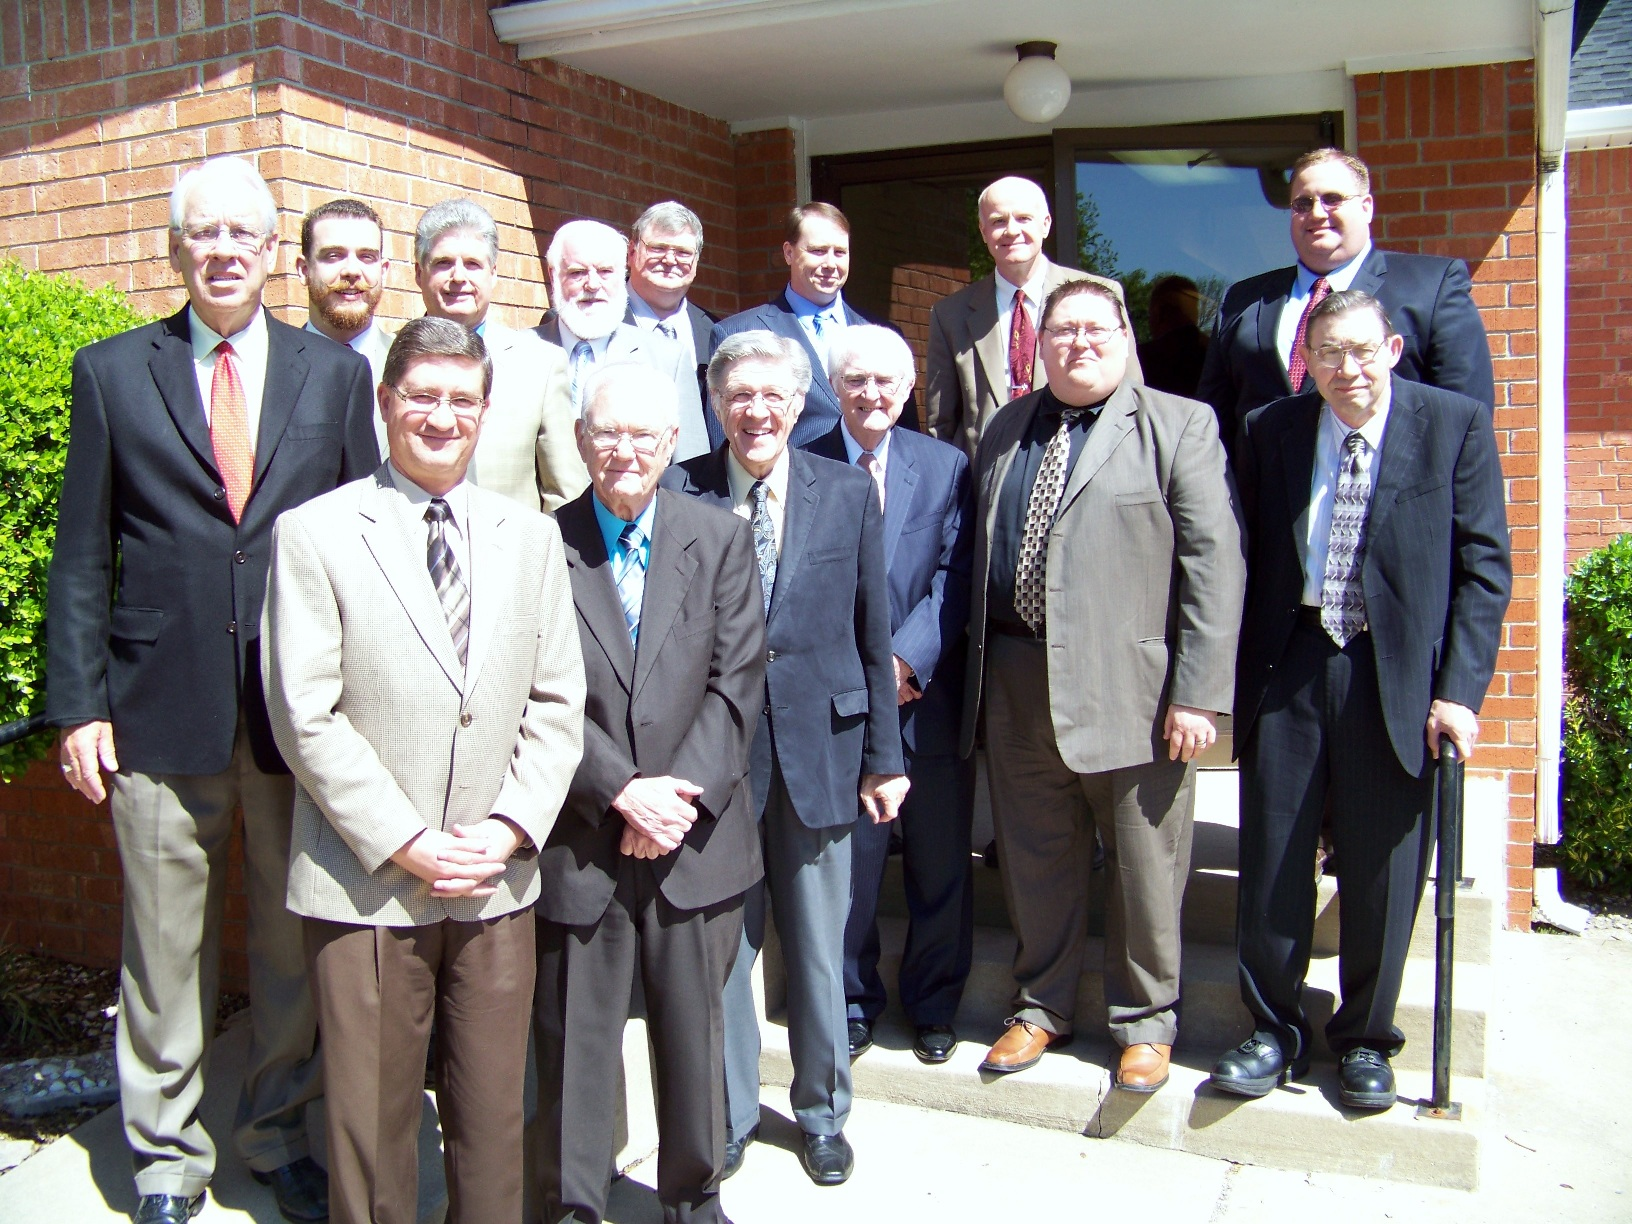 Preachers at the Claremore Bible conference